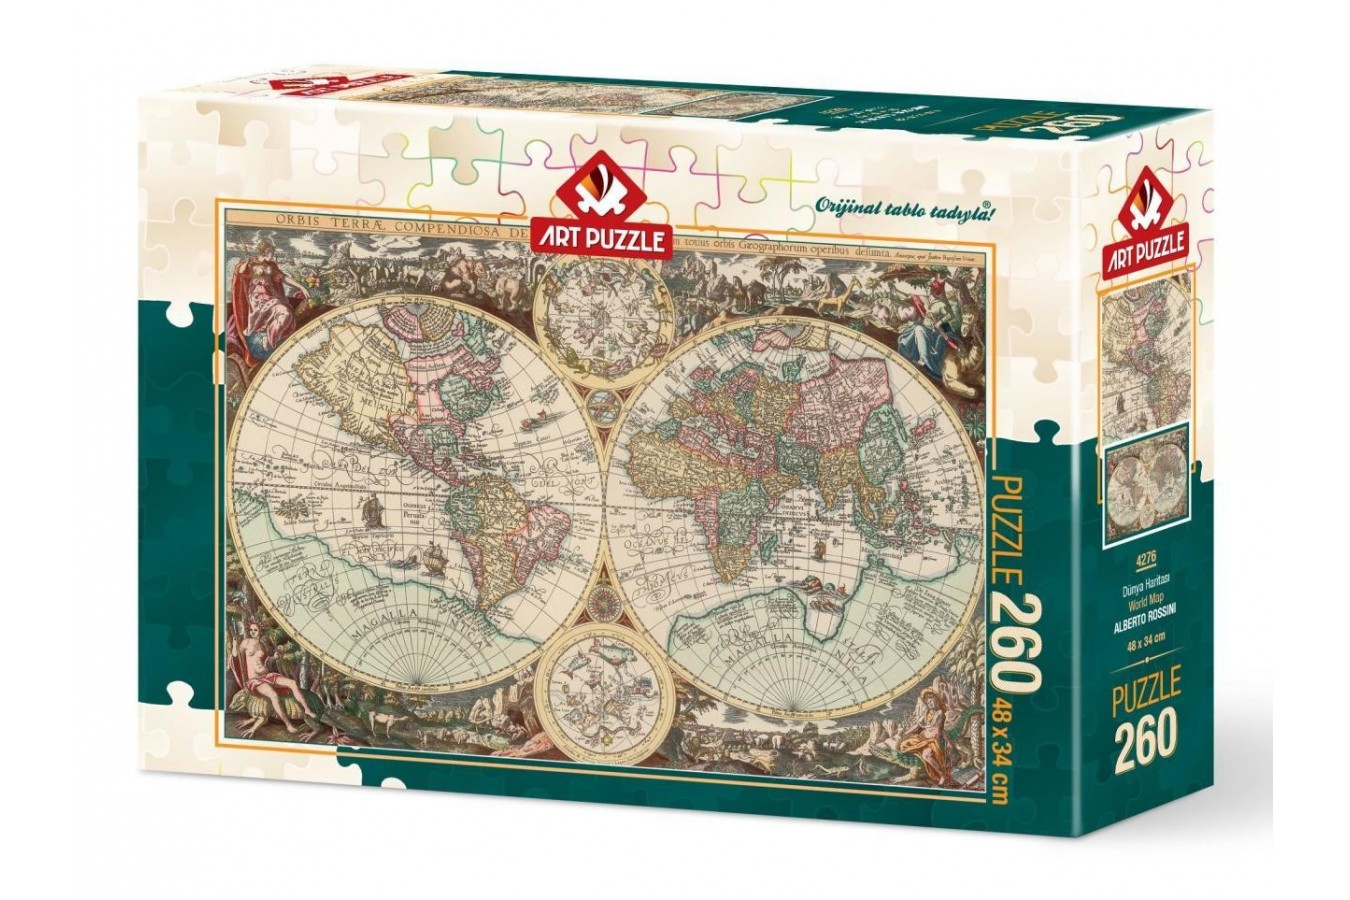 Puzzle Art Puzzle - Antique World Map, 260 piese (Art-Puzzle-4276)